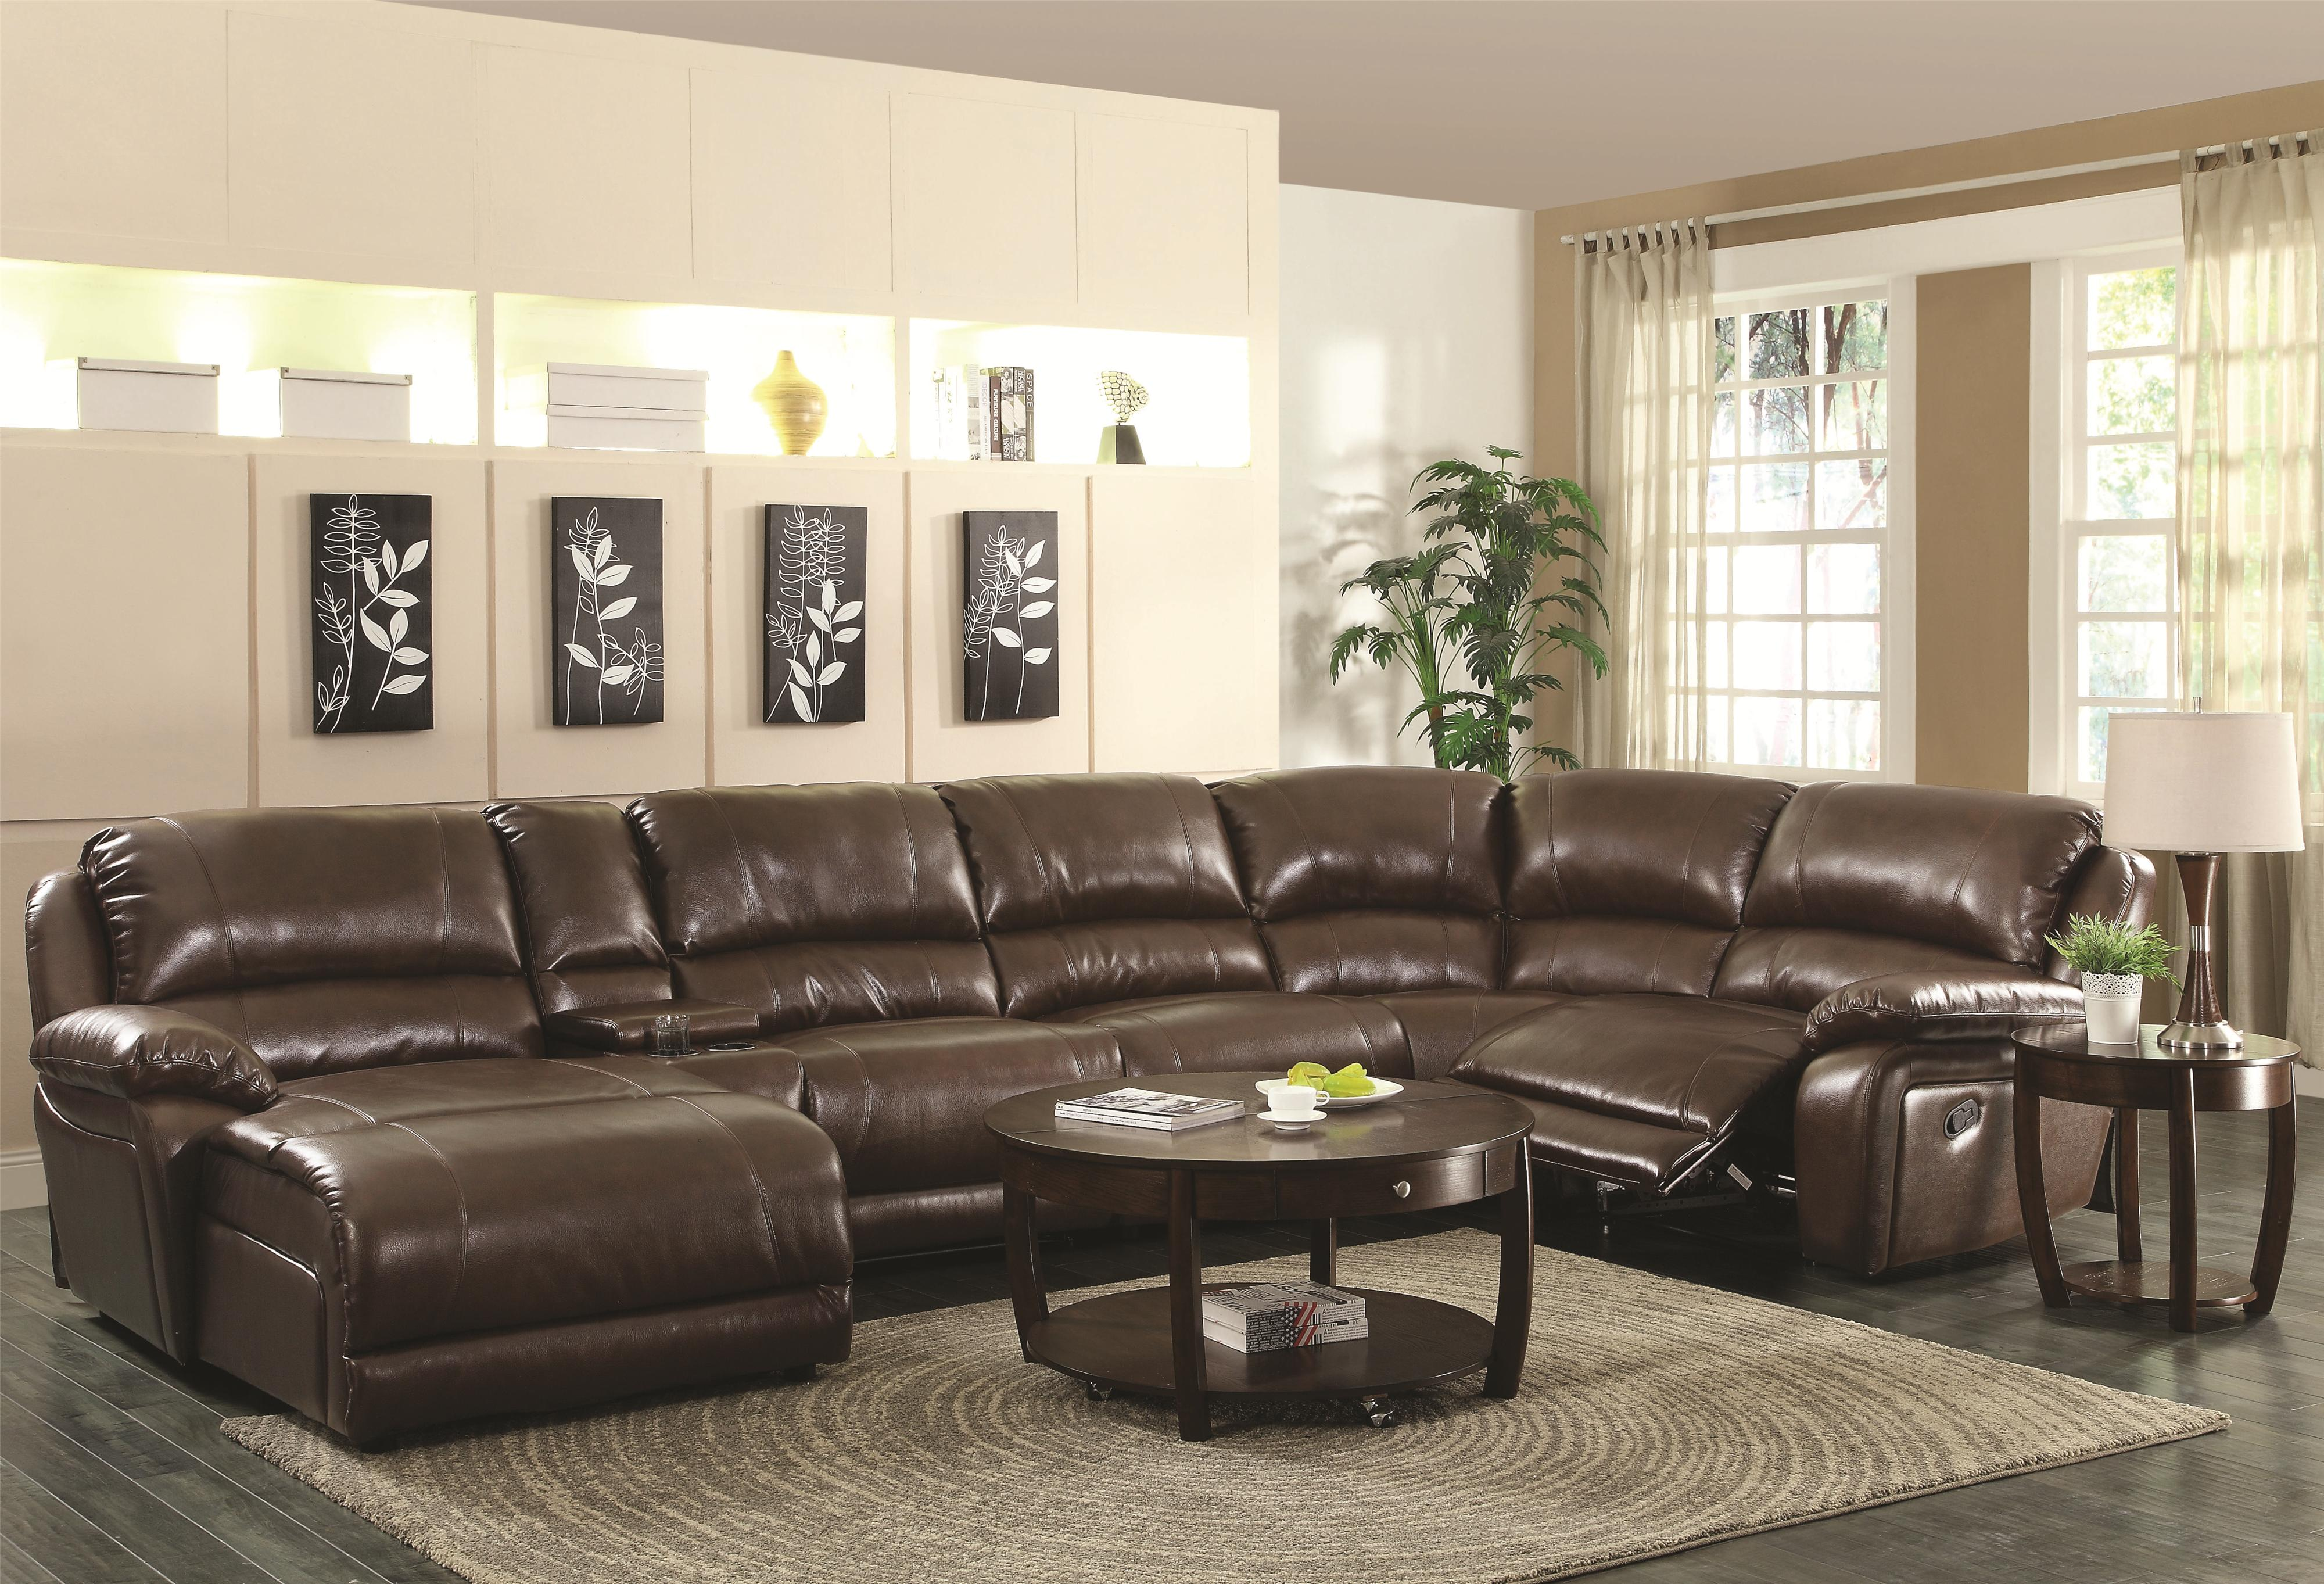 Coaster Mackenzie Chestnut 6 Piece Reclining Sectional Sofa with